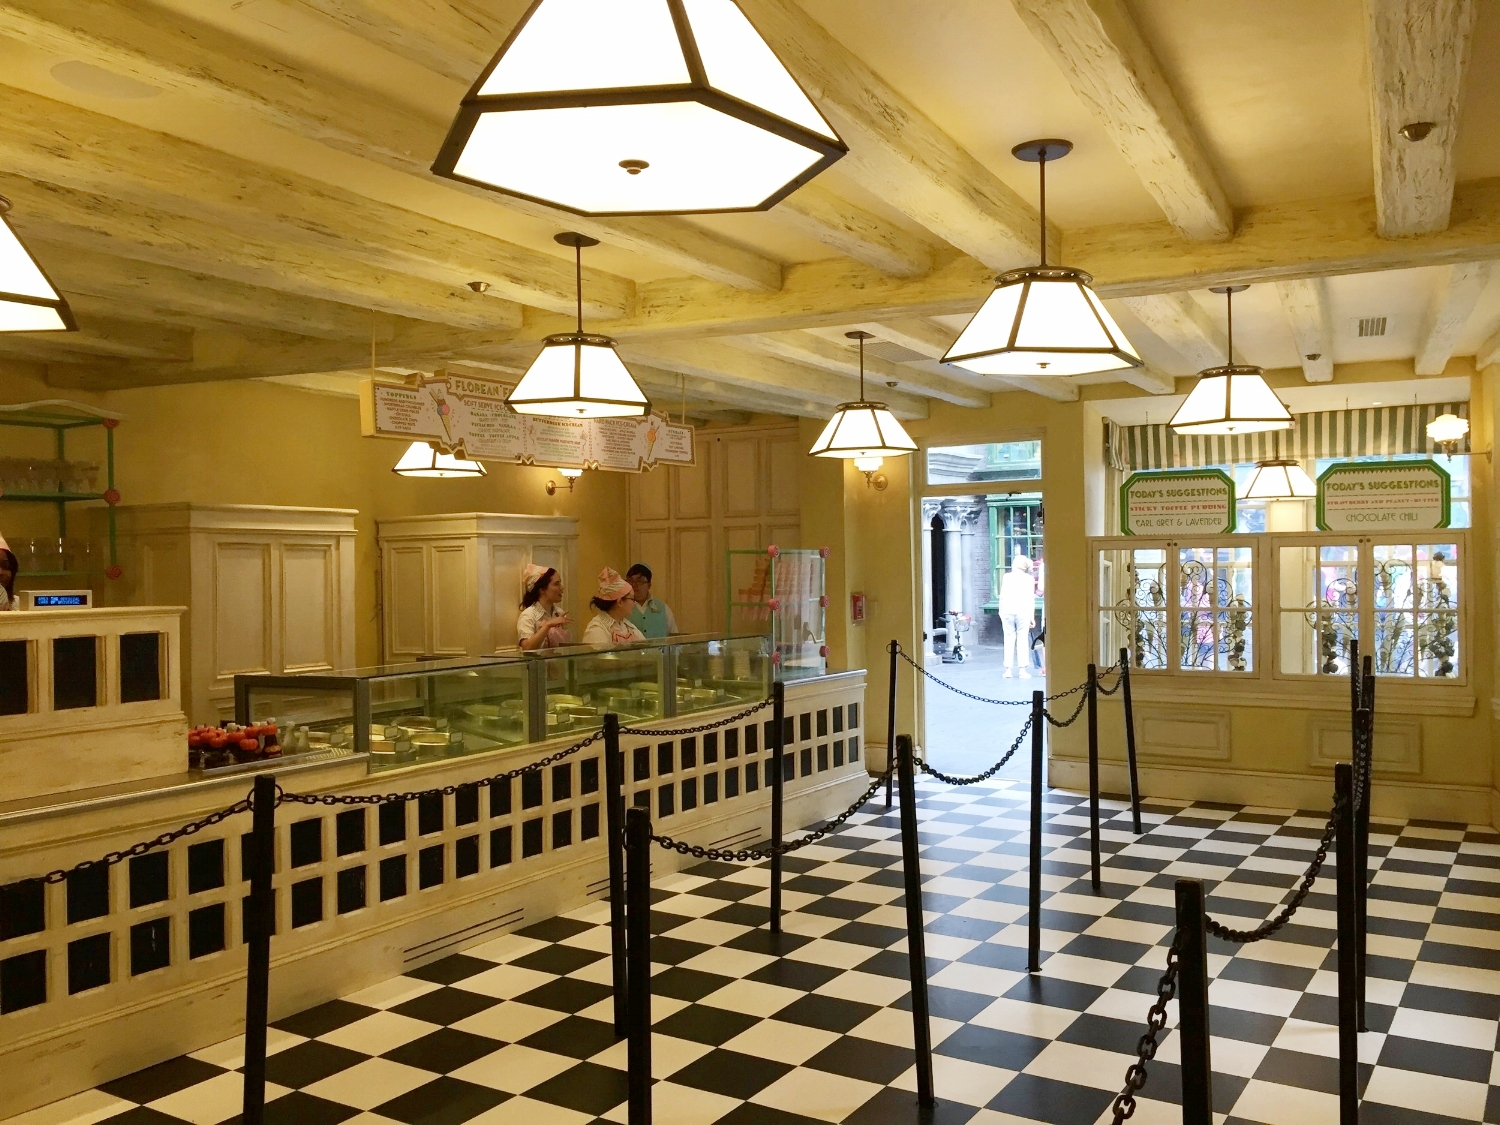 The inside of Florean Fortescue's Ice Cream Parlour consists of a counter and a queue. There is no seating.